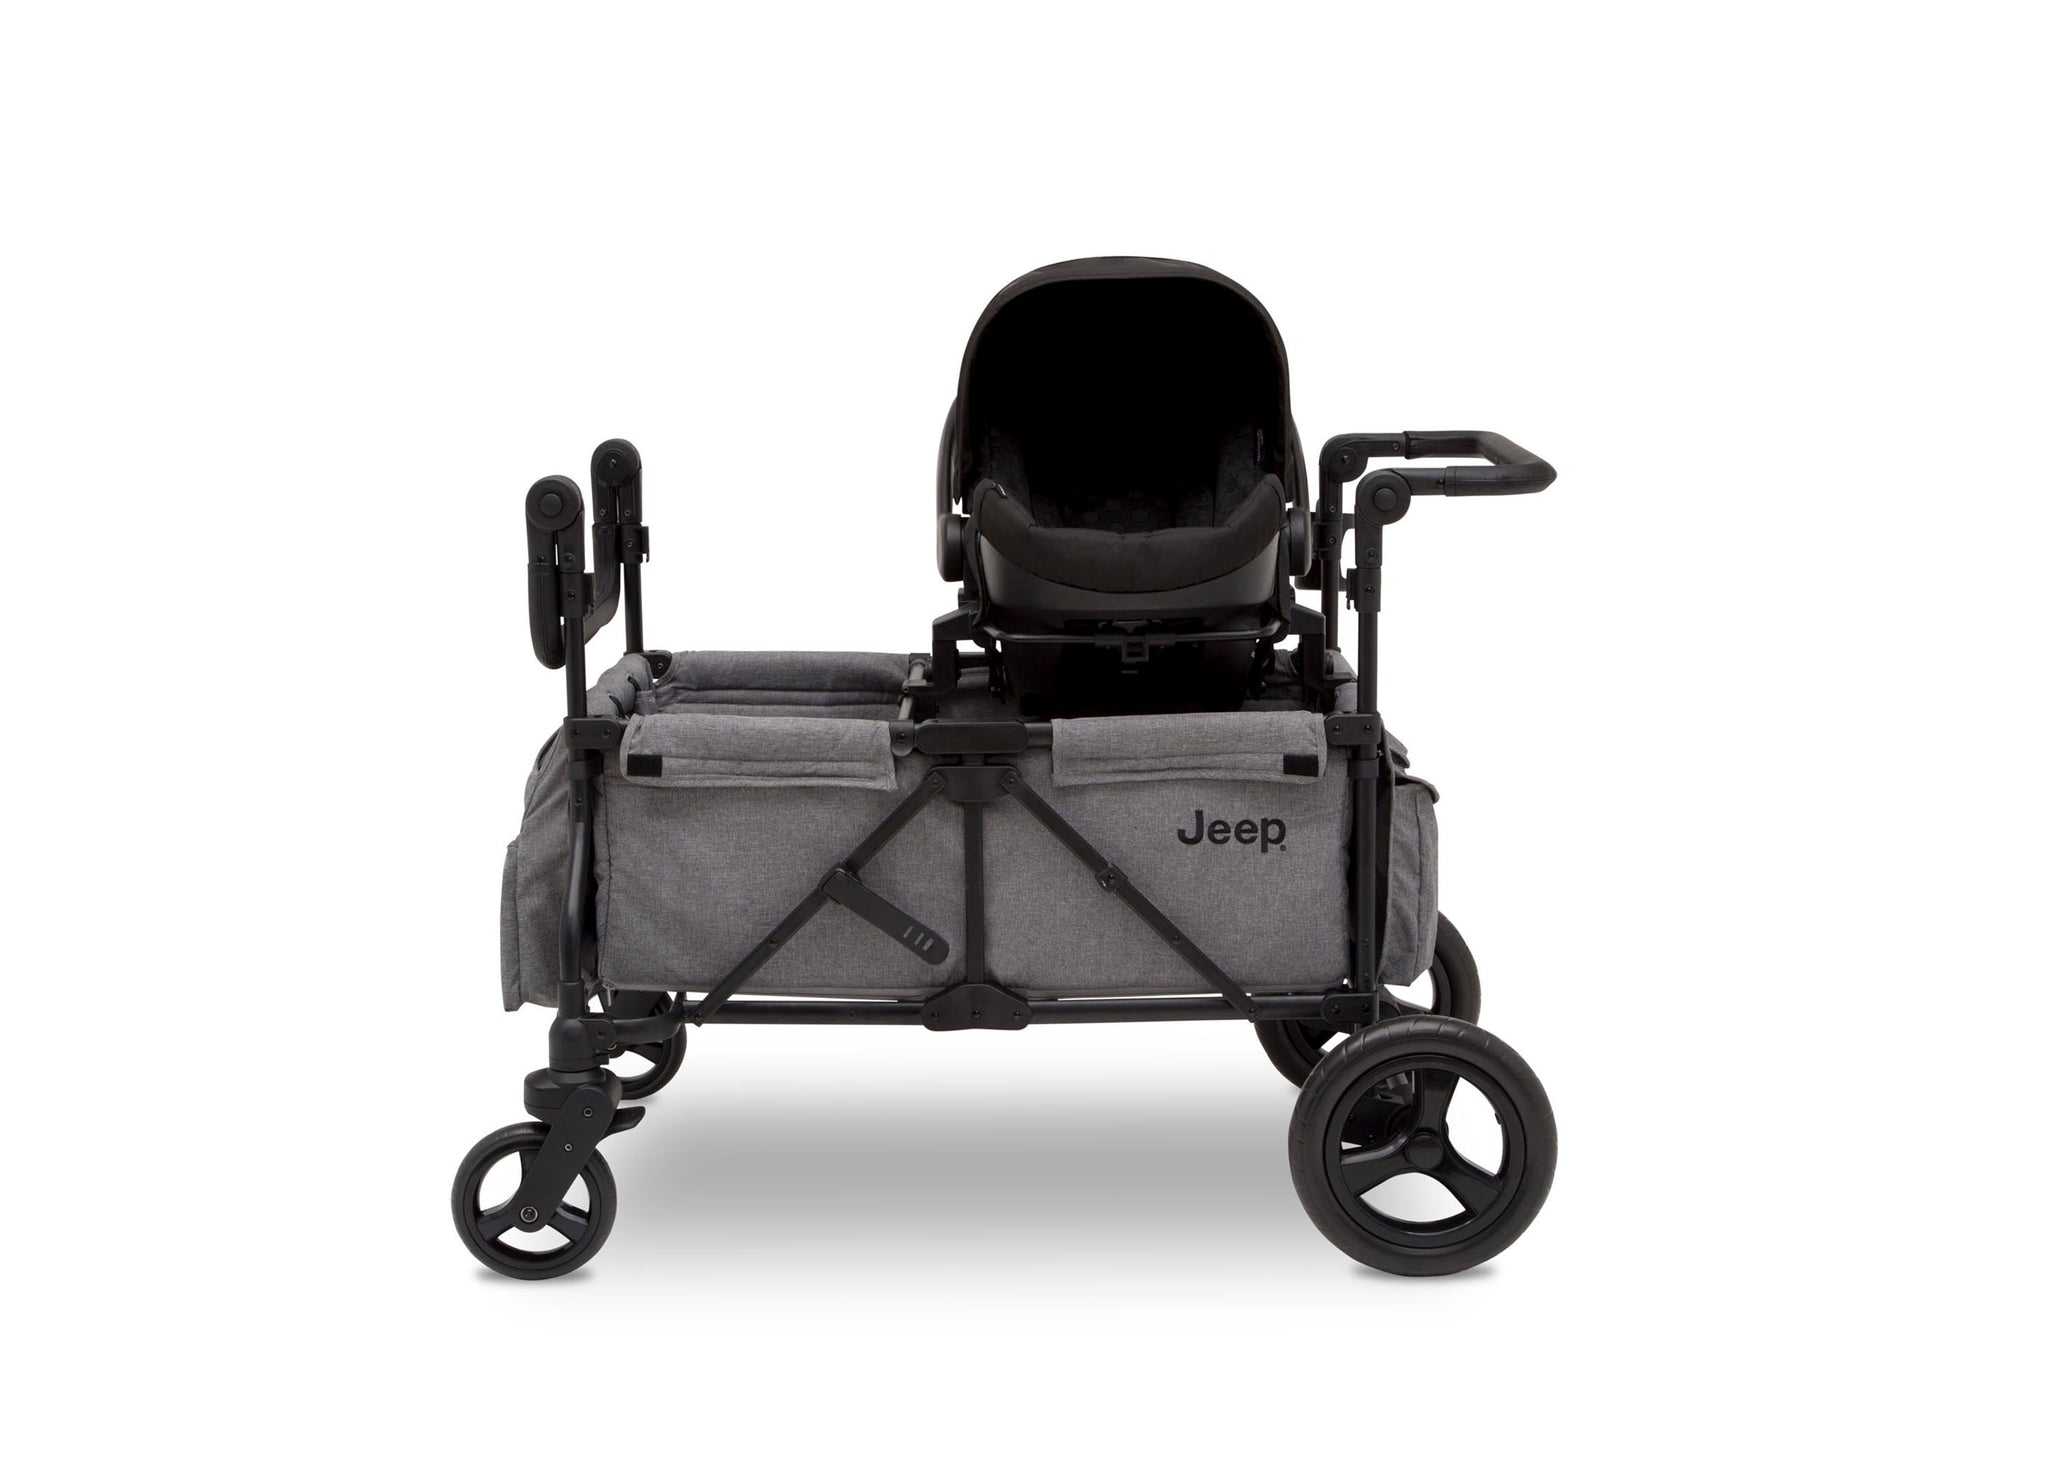 Jeep Wrangler Stroller Wagon by Delta Children, Grey (2148), Attach your current infant car seat